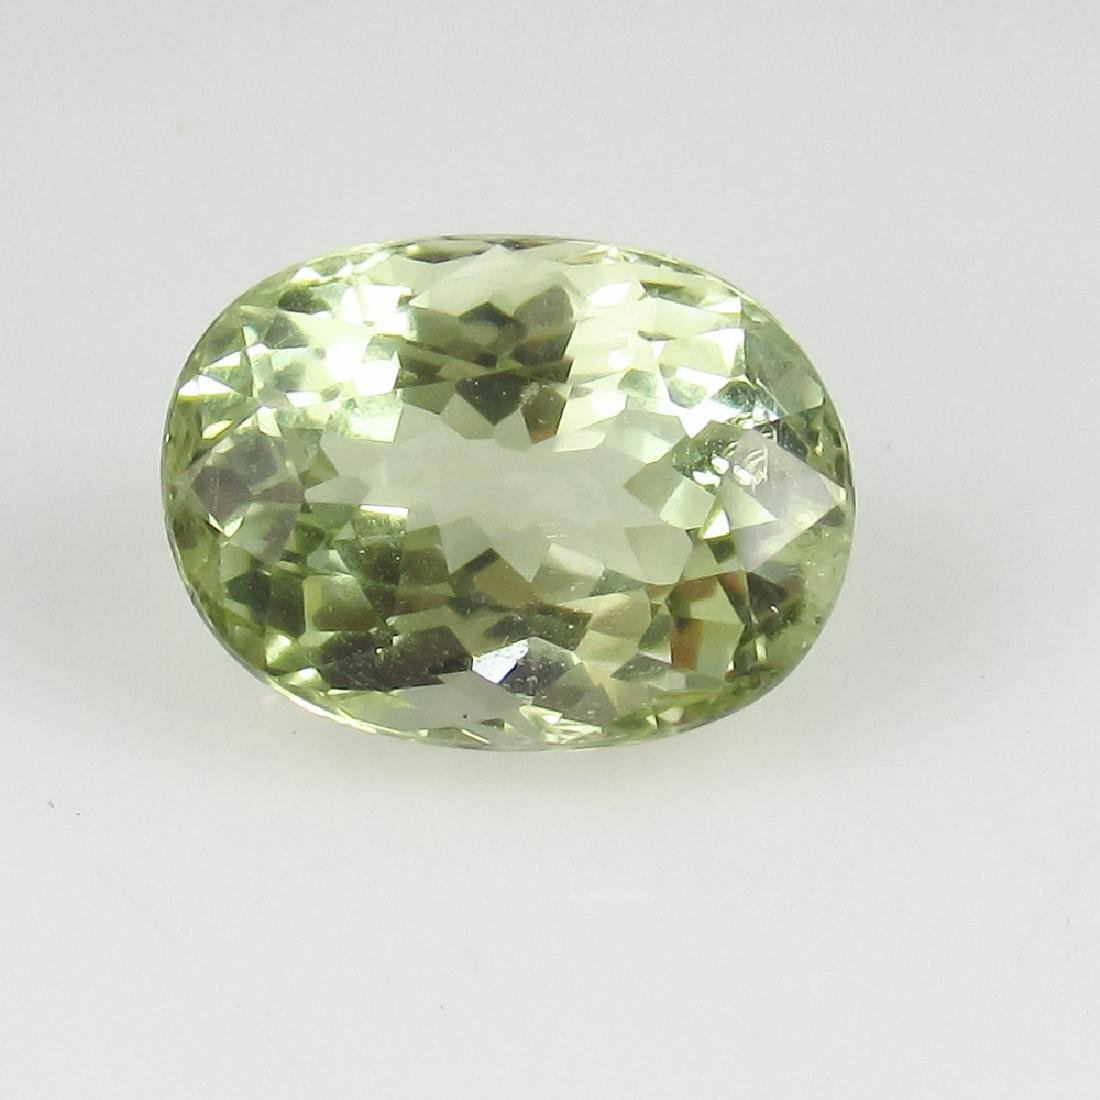 2.63 Ct Genuine Loose Exclusive Rich Luster Green Beryl - 3